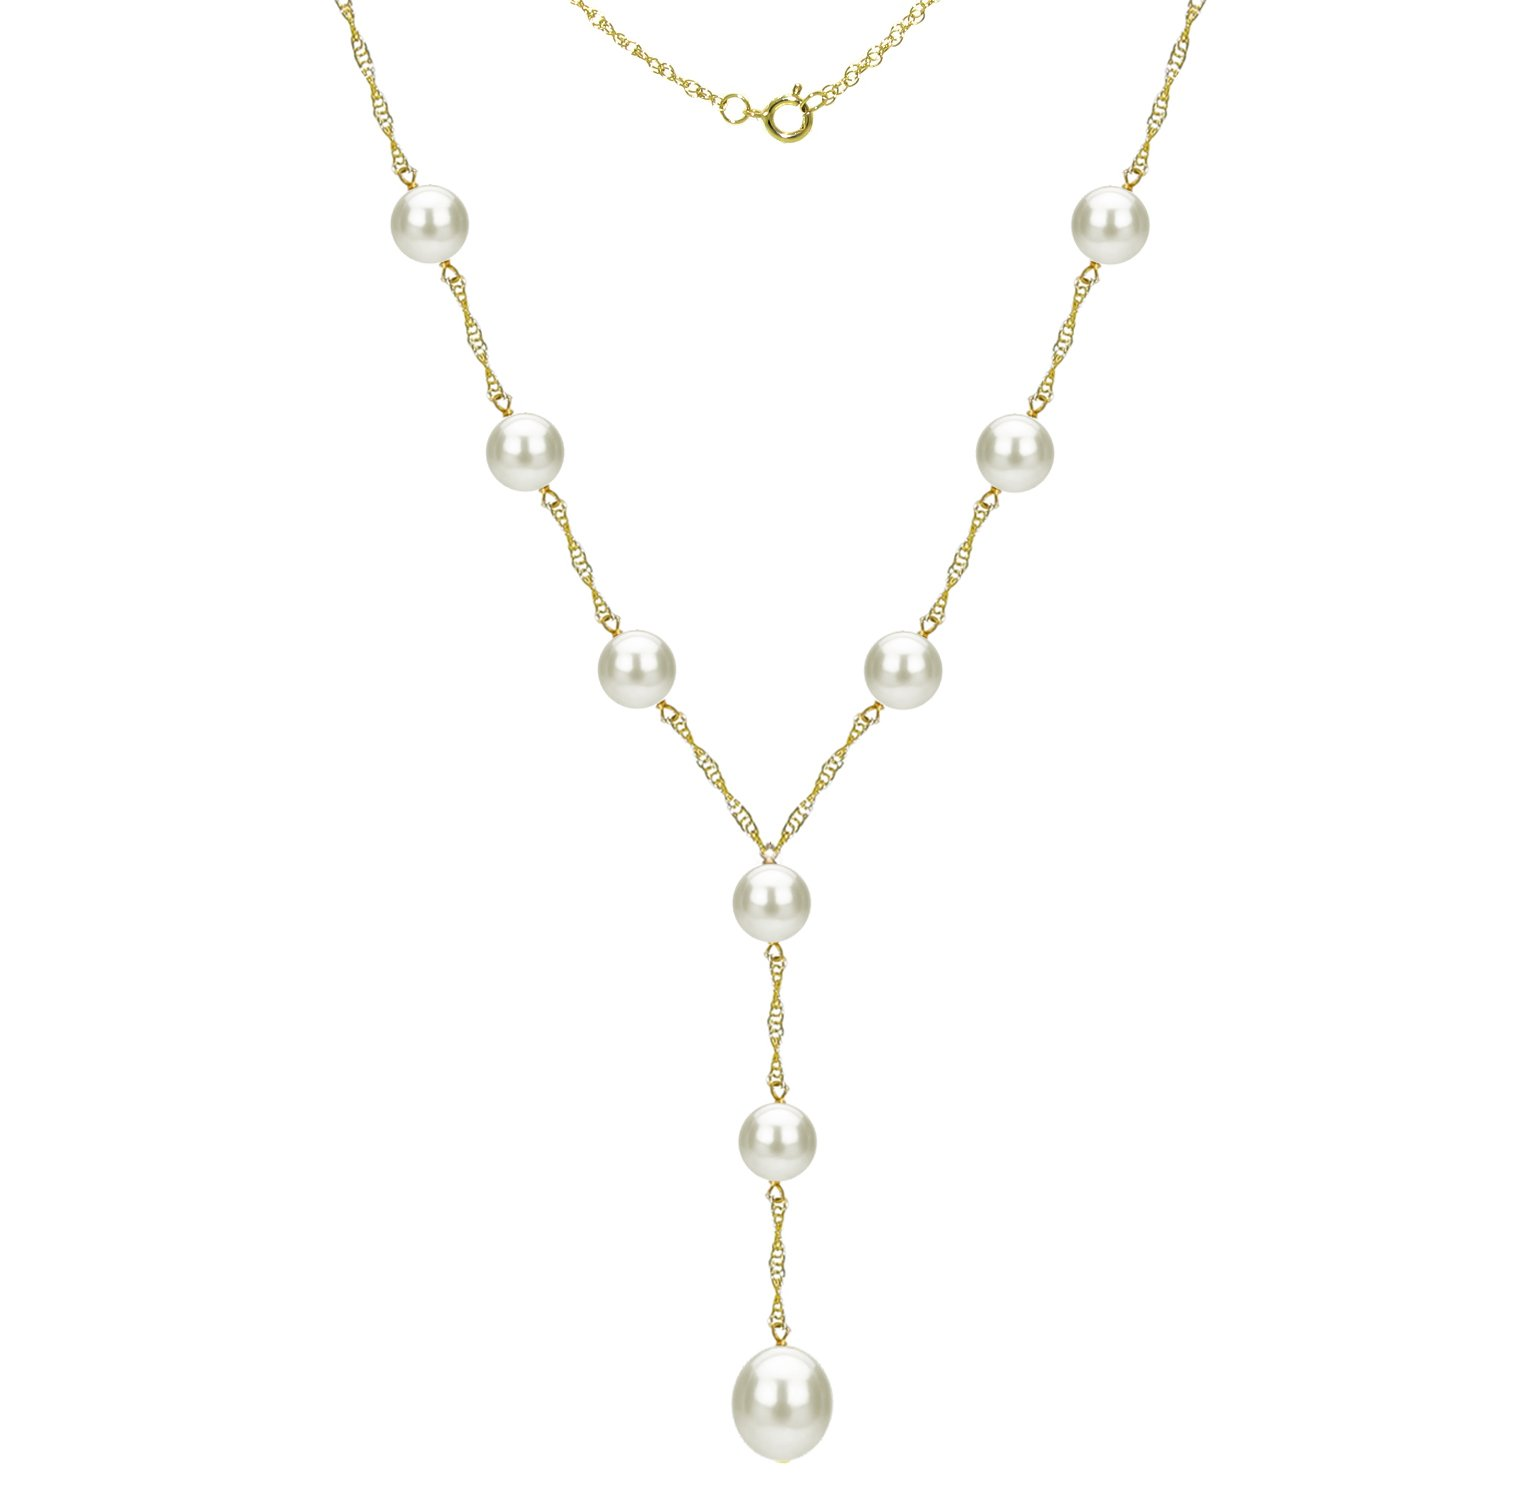 14k Yellow Gold 8-8.5mm and 9-9.5 White Freshwater Cultured Pearl Station Necklace, 18'' + 2'' Drop